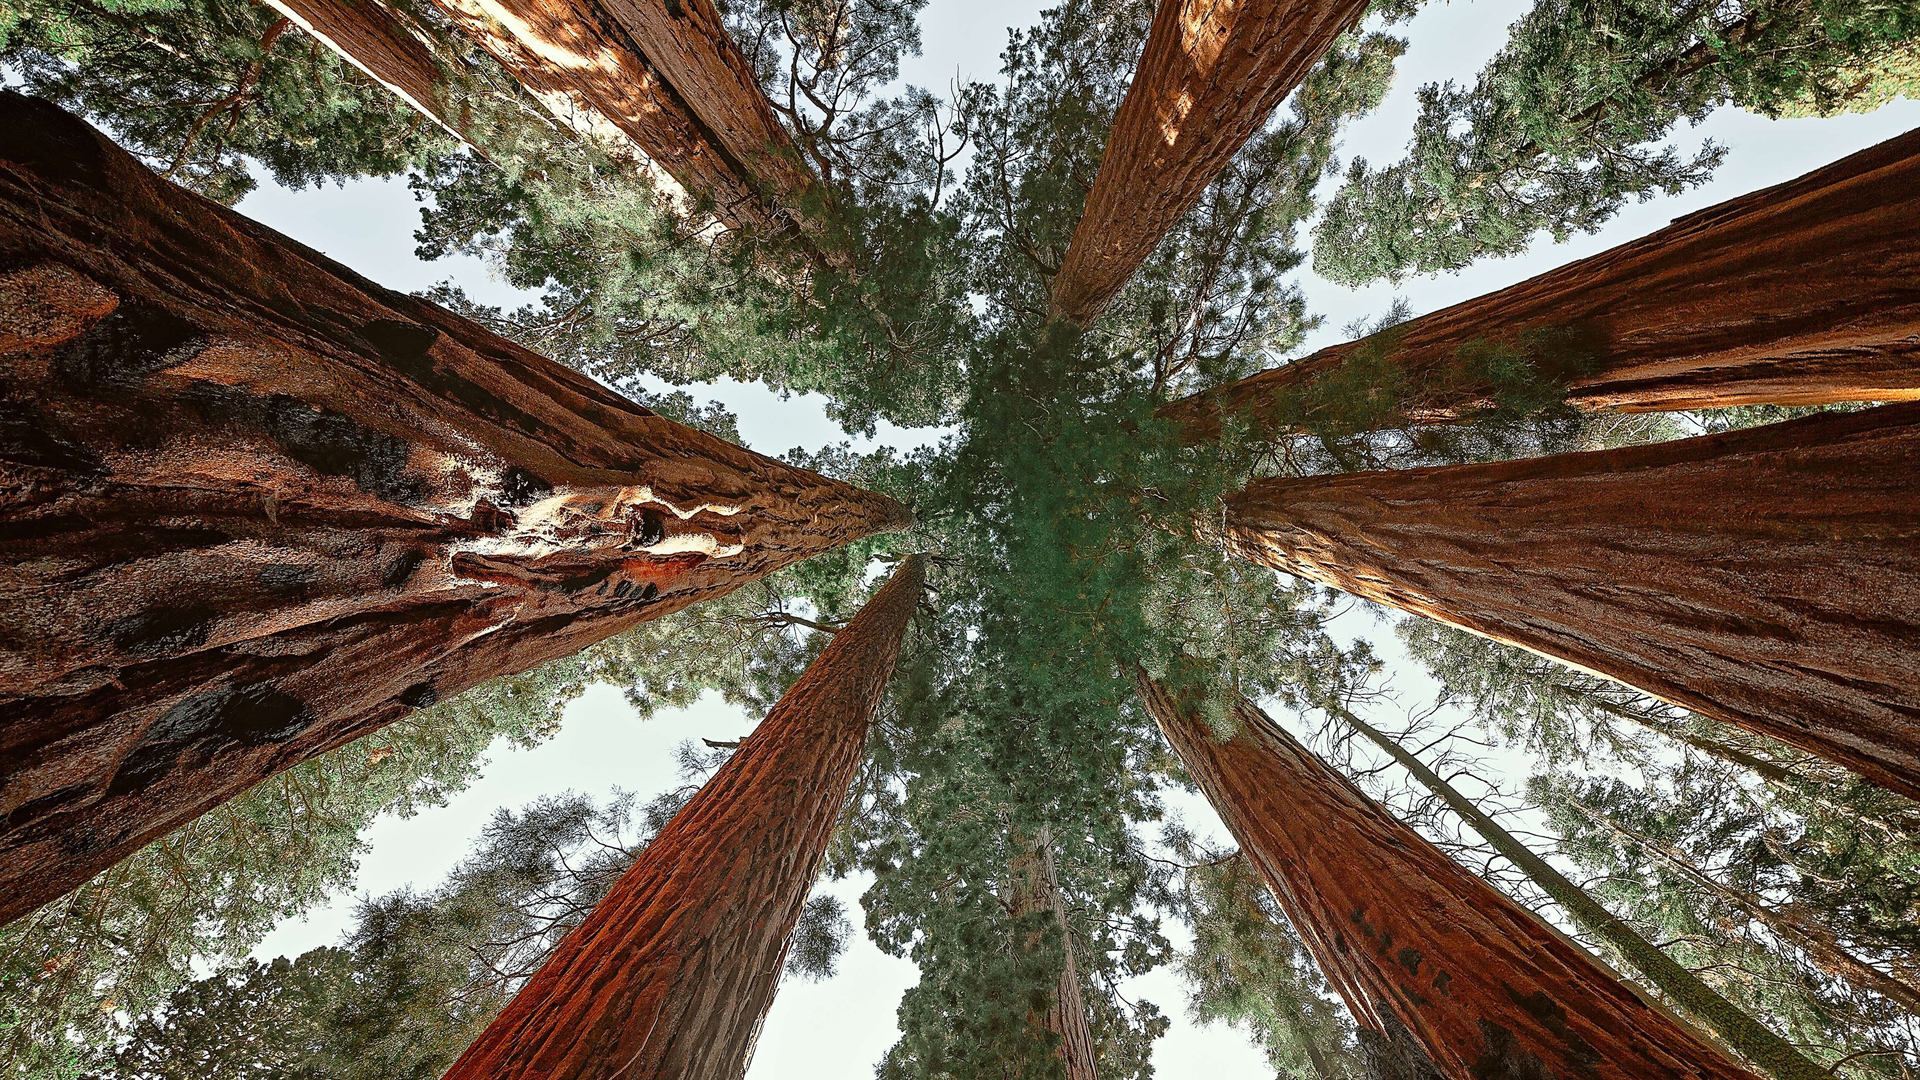 An upward view of giant sequoias in Sequoia National Park. (Credit: Marji Lang/LightRocket via Getty Images)